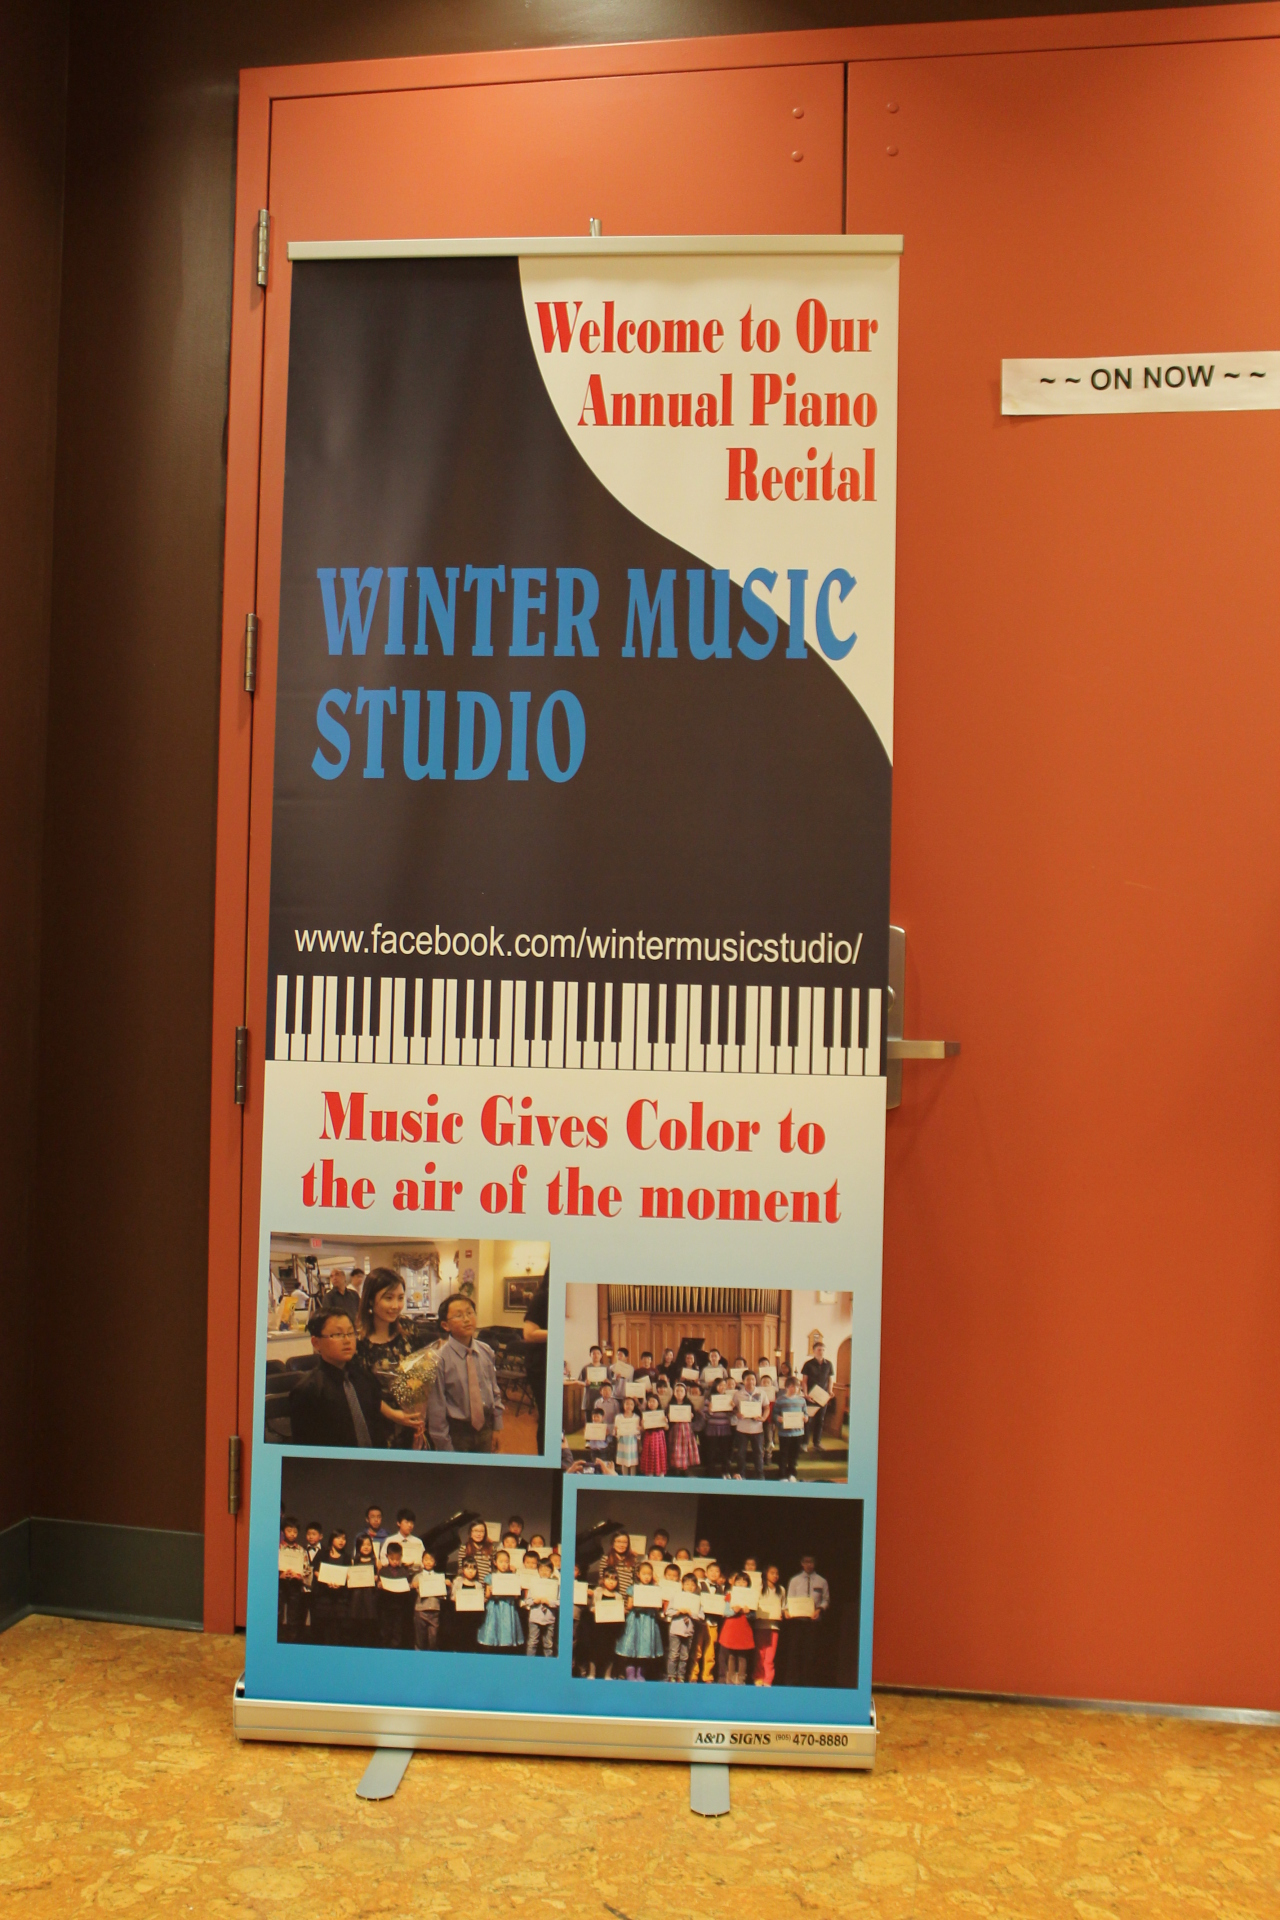 Winter Music Studio Poster